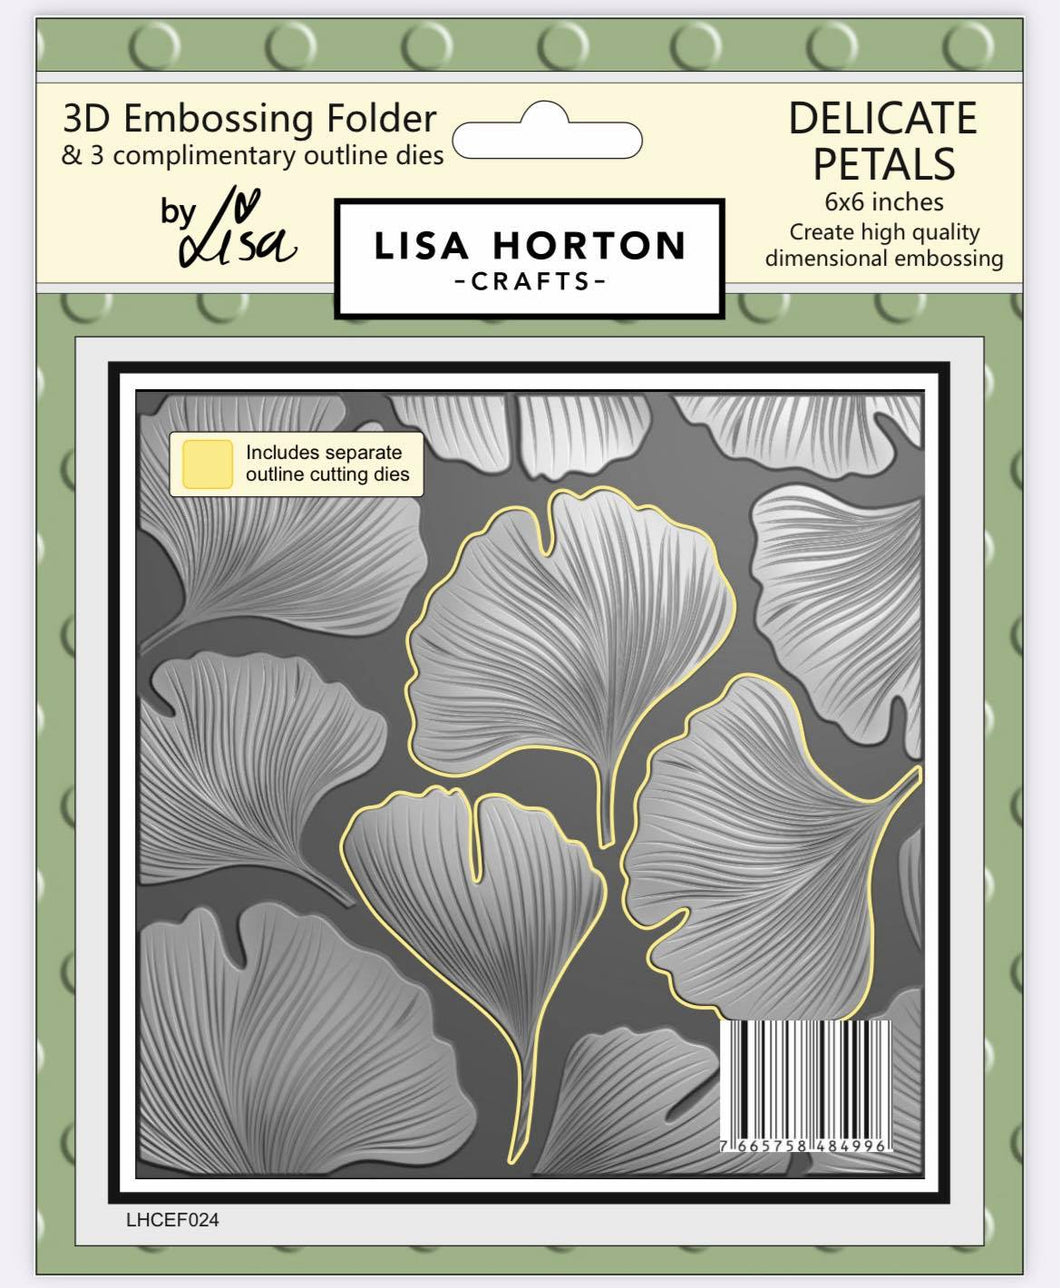 3D Embossing Folder - Delicate Petals (with 3 coordinating outline dies)